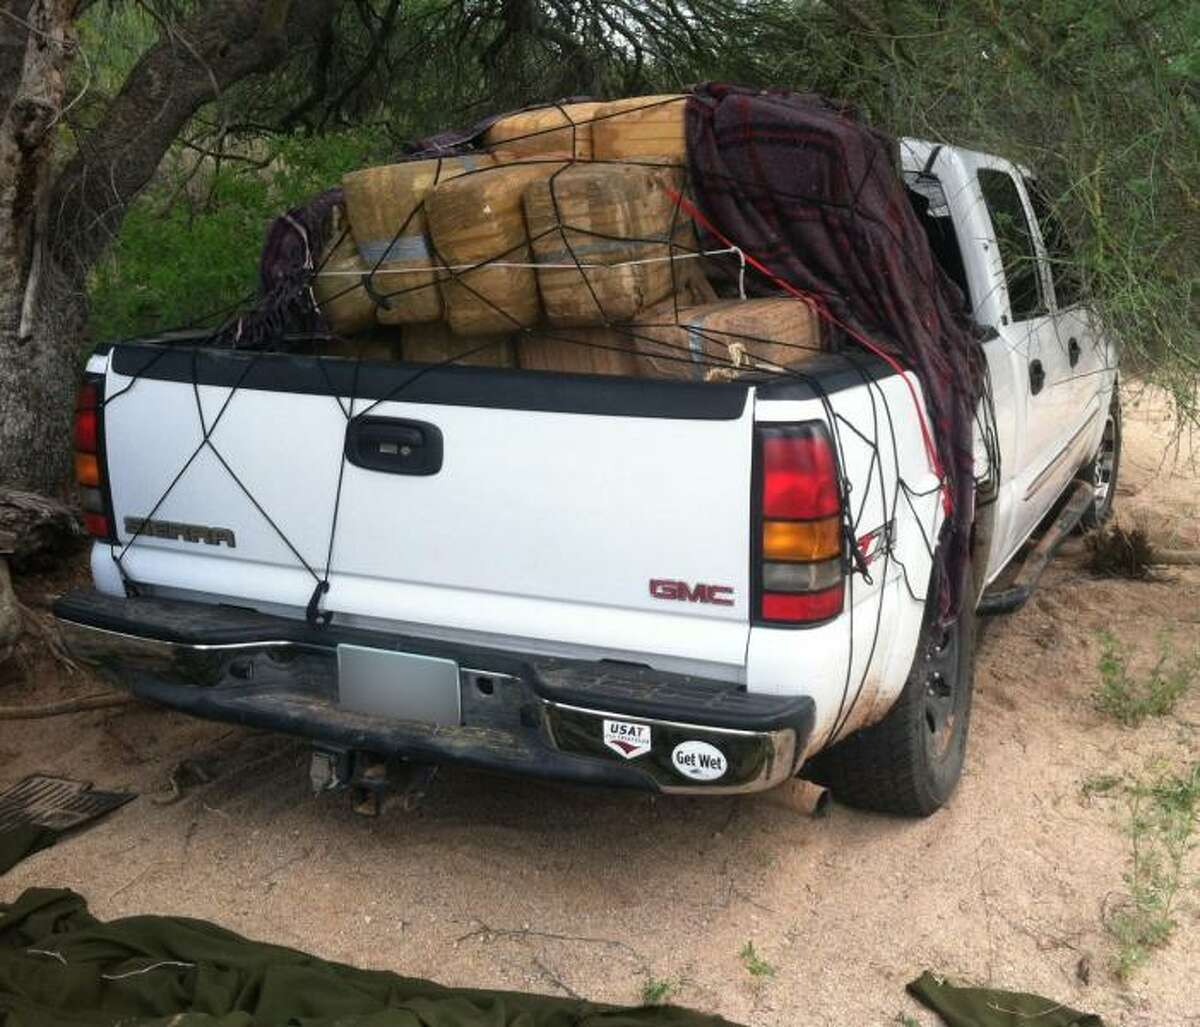 Tucson Sector Border Patrol agents seized more than 1,700 pounds of marijuana worth $878,500 from a stolen vehicle near Why, Arizona on Sept. 9, 2014. Agents from the Ajo Border Patrol Station discovered and followed a set of tire tracks leading them an abandoned pick-up truck covered with a large green tarp attempting to conceal 81 bundles of marijuana.